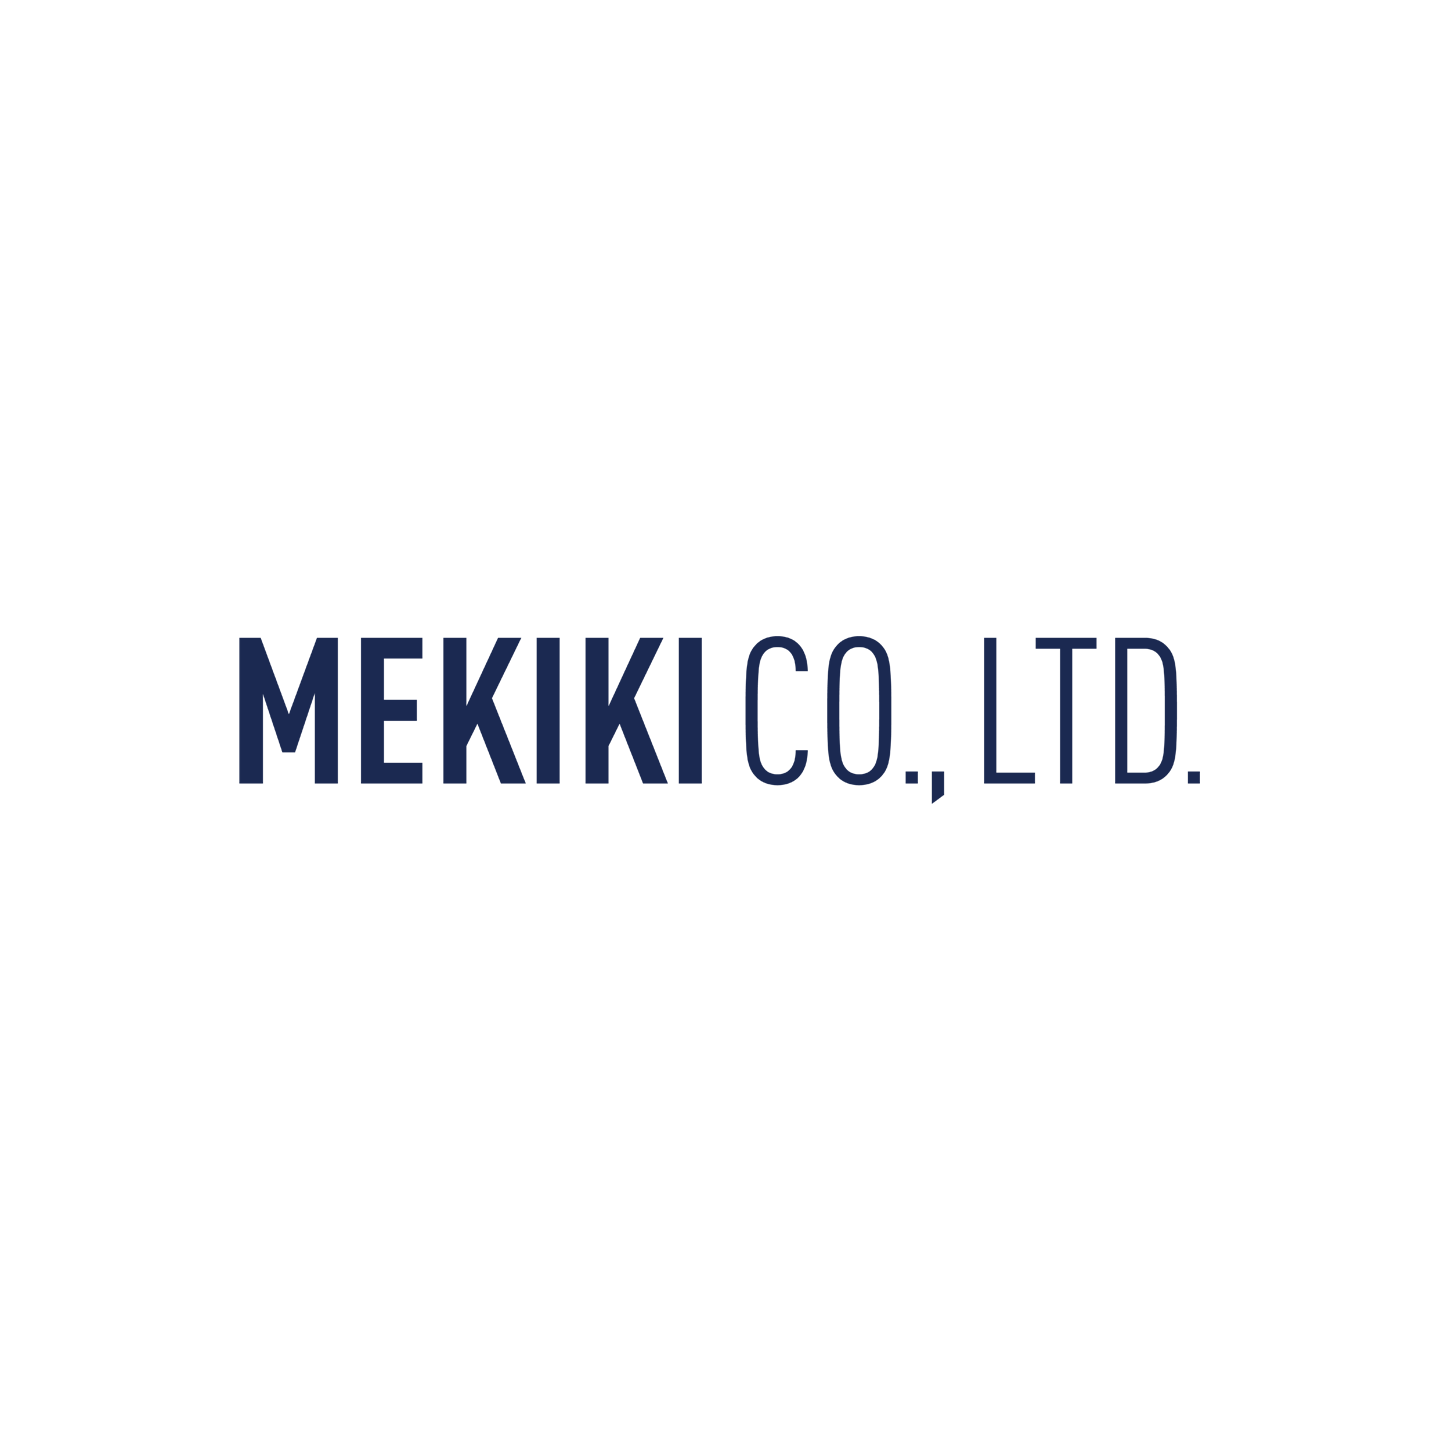 Mekiki co, ltd.